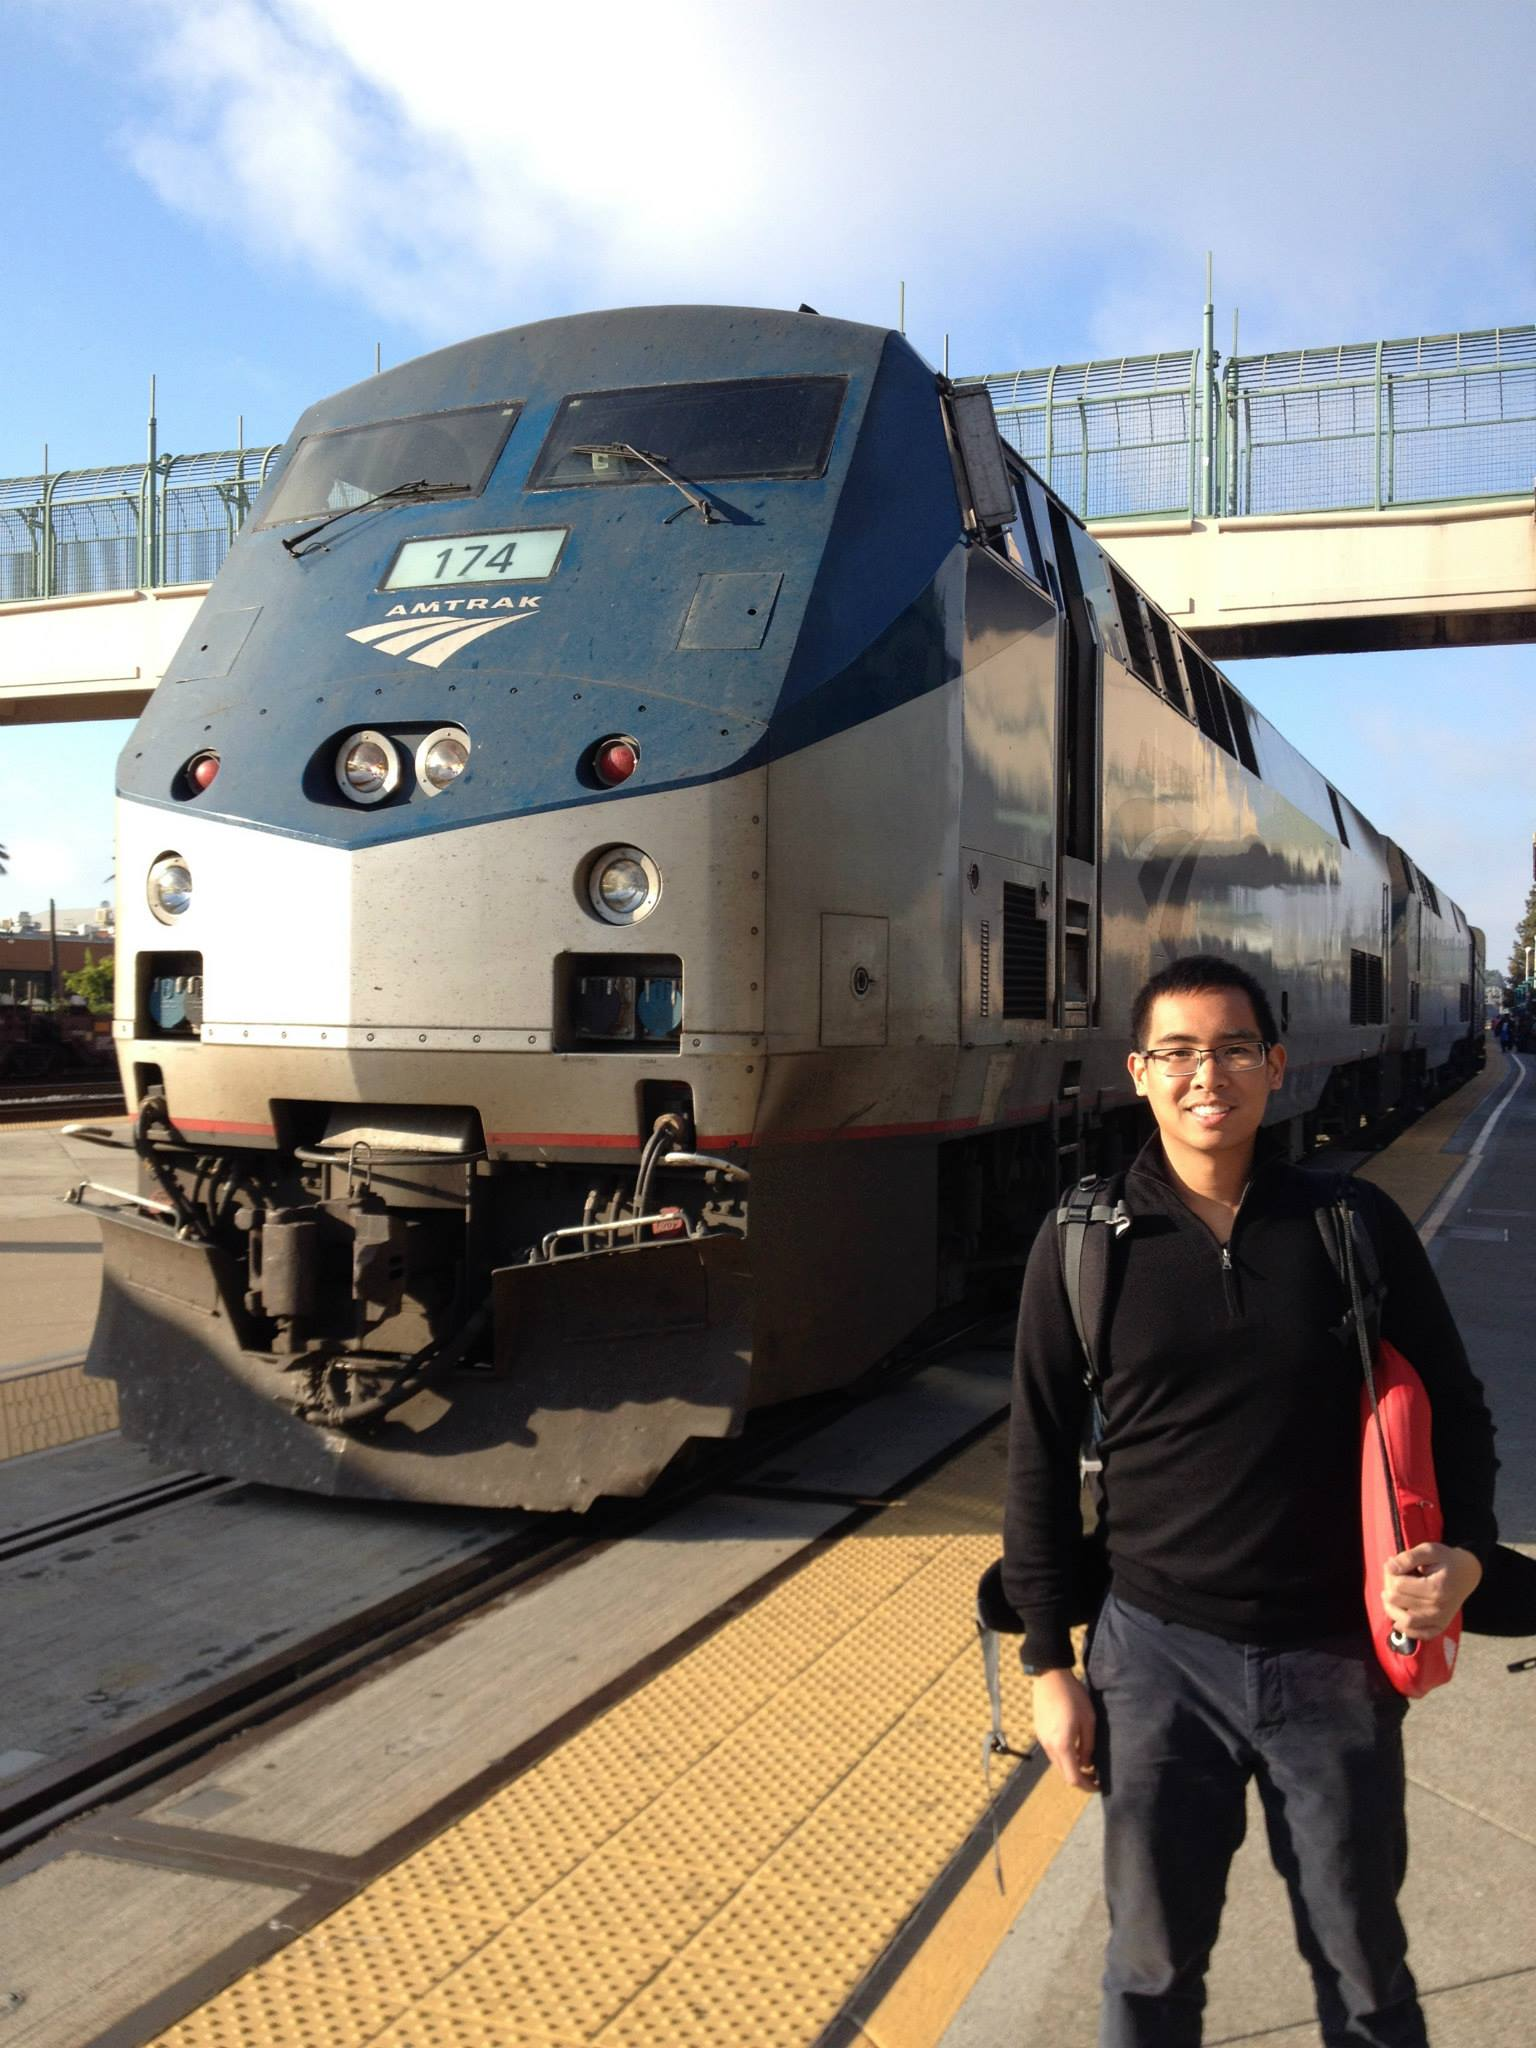 California Zephyr - Emeryville Station